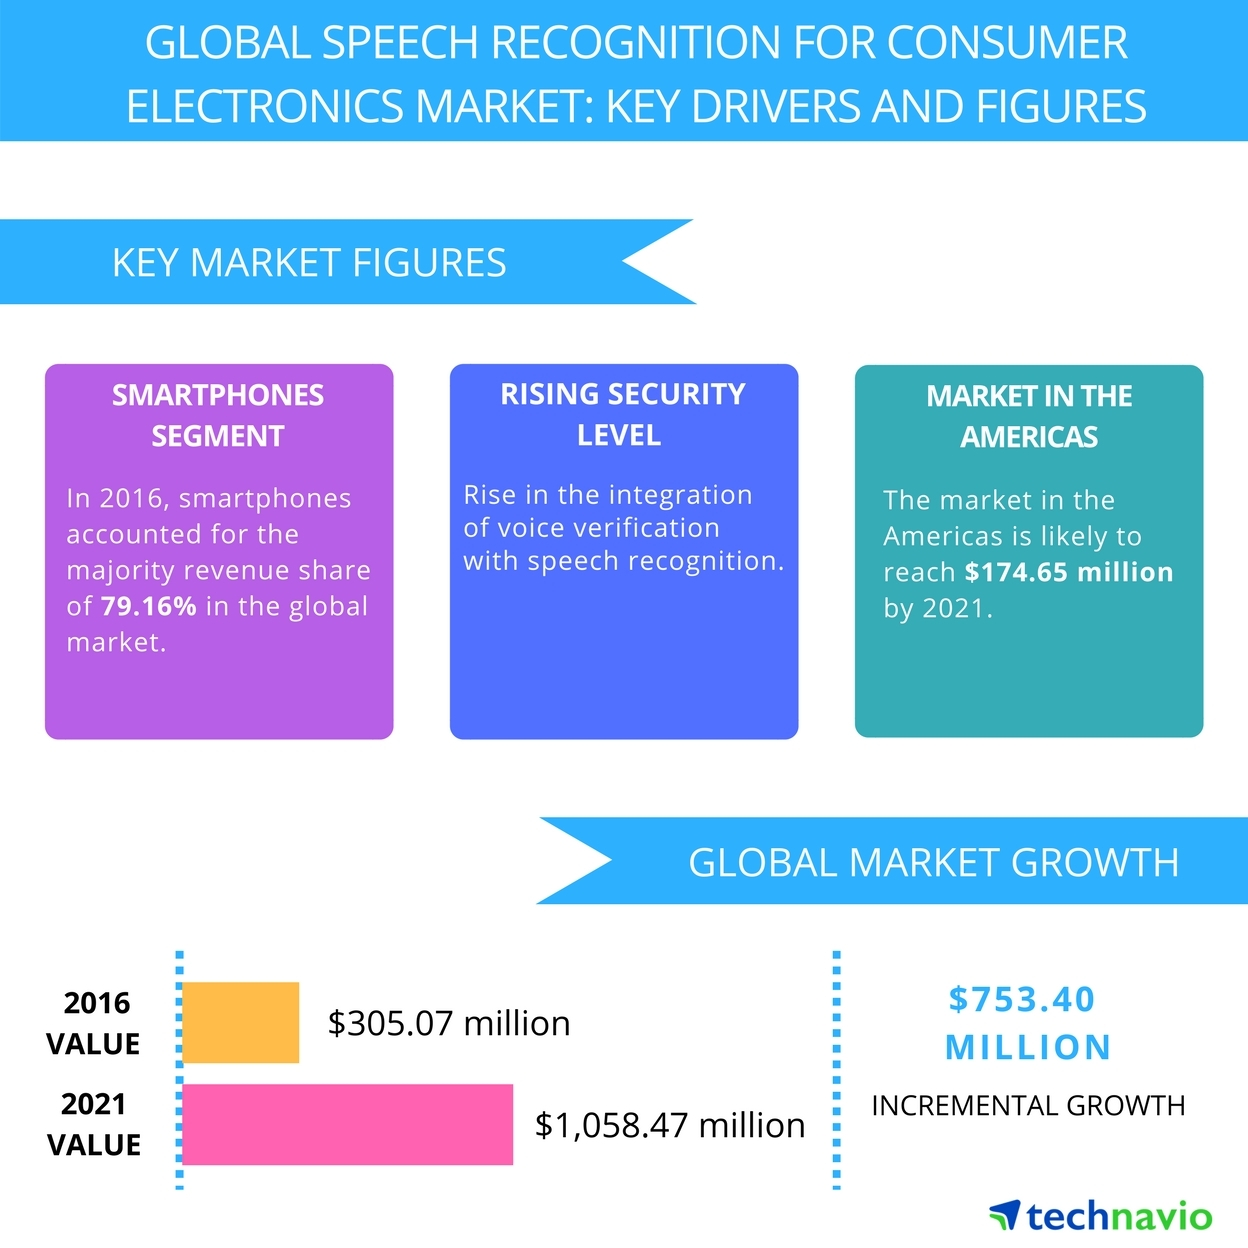 Technavio has published a new report on the global speech recognition for consumer electronics market from 2017-2021. (Graphic: Business Wire)